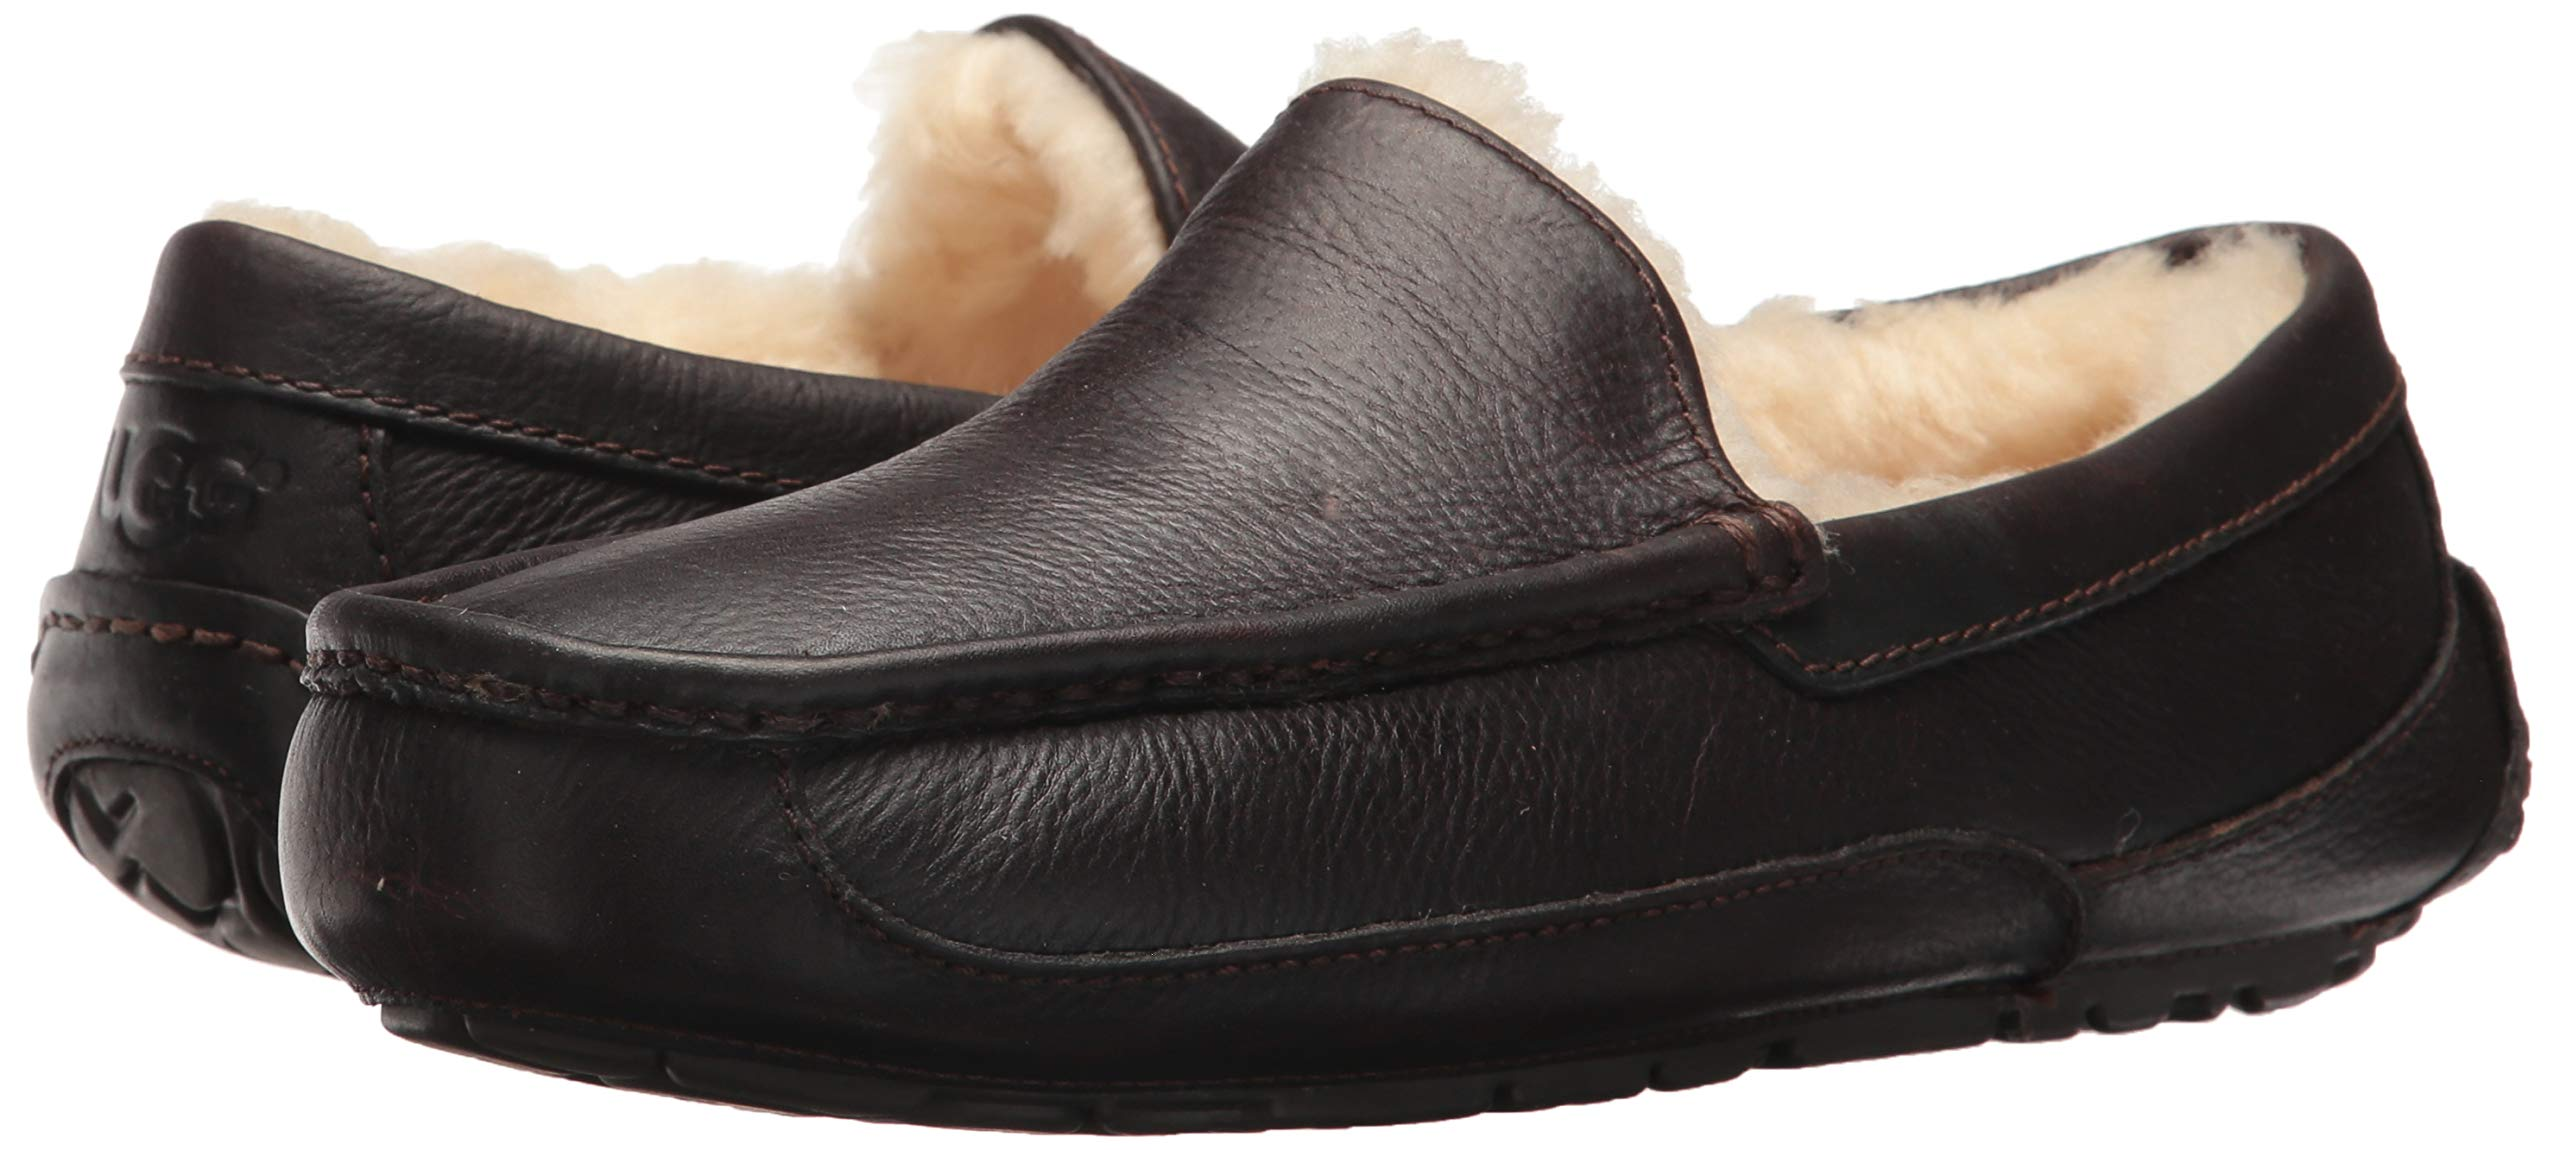 UGG Men's Ascot Slipper, China Tea Leather, 15 M US by UGG (Image #6)